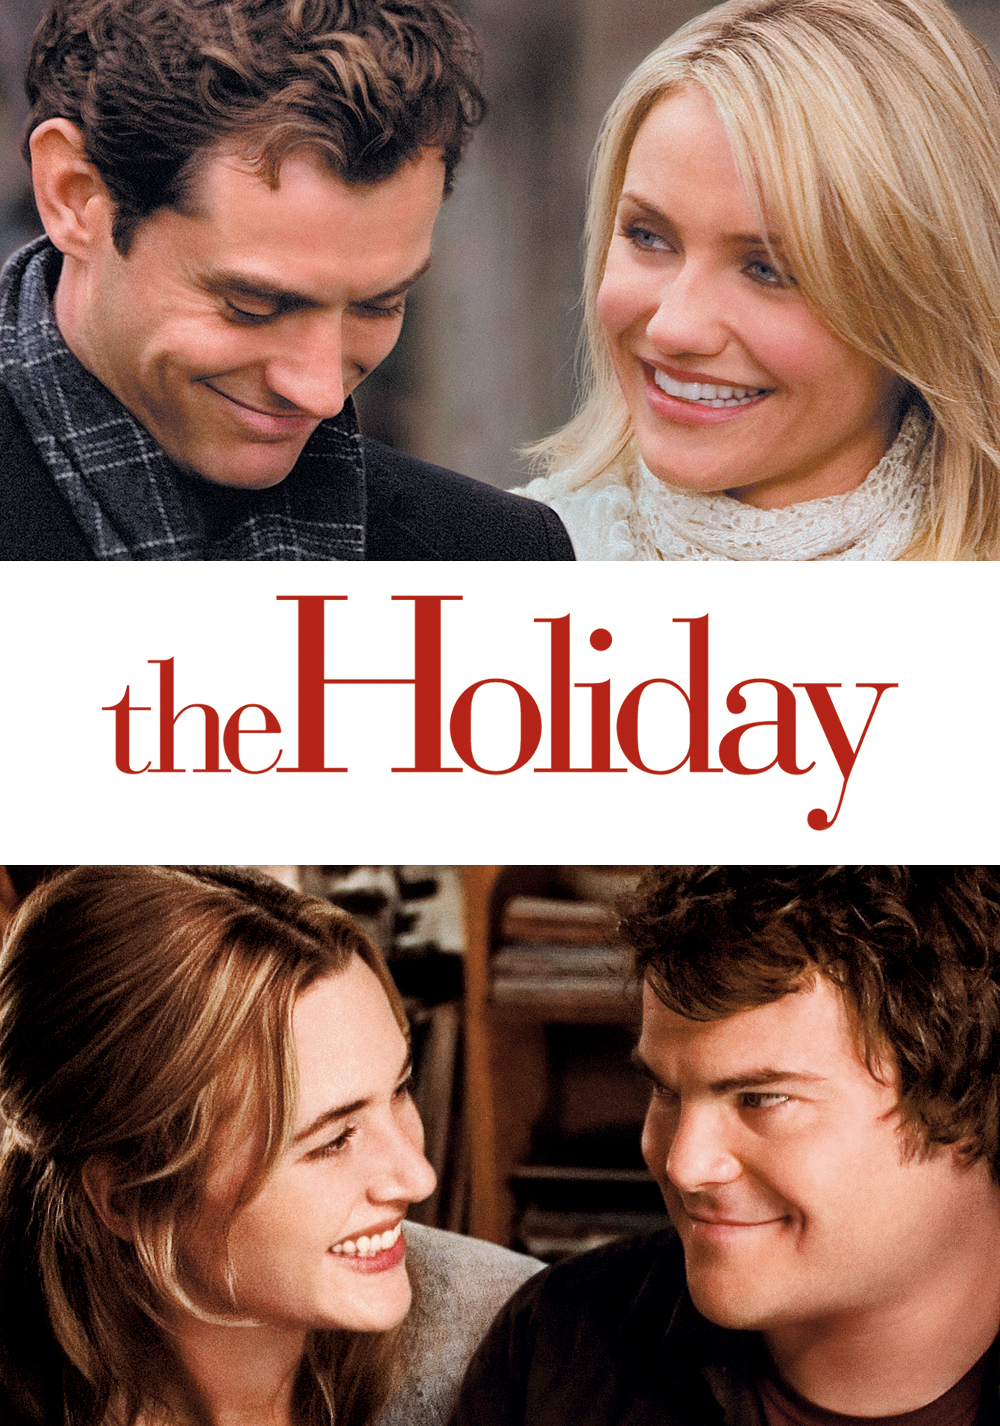 the-holiday-52349d628256b